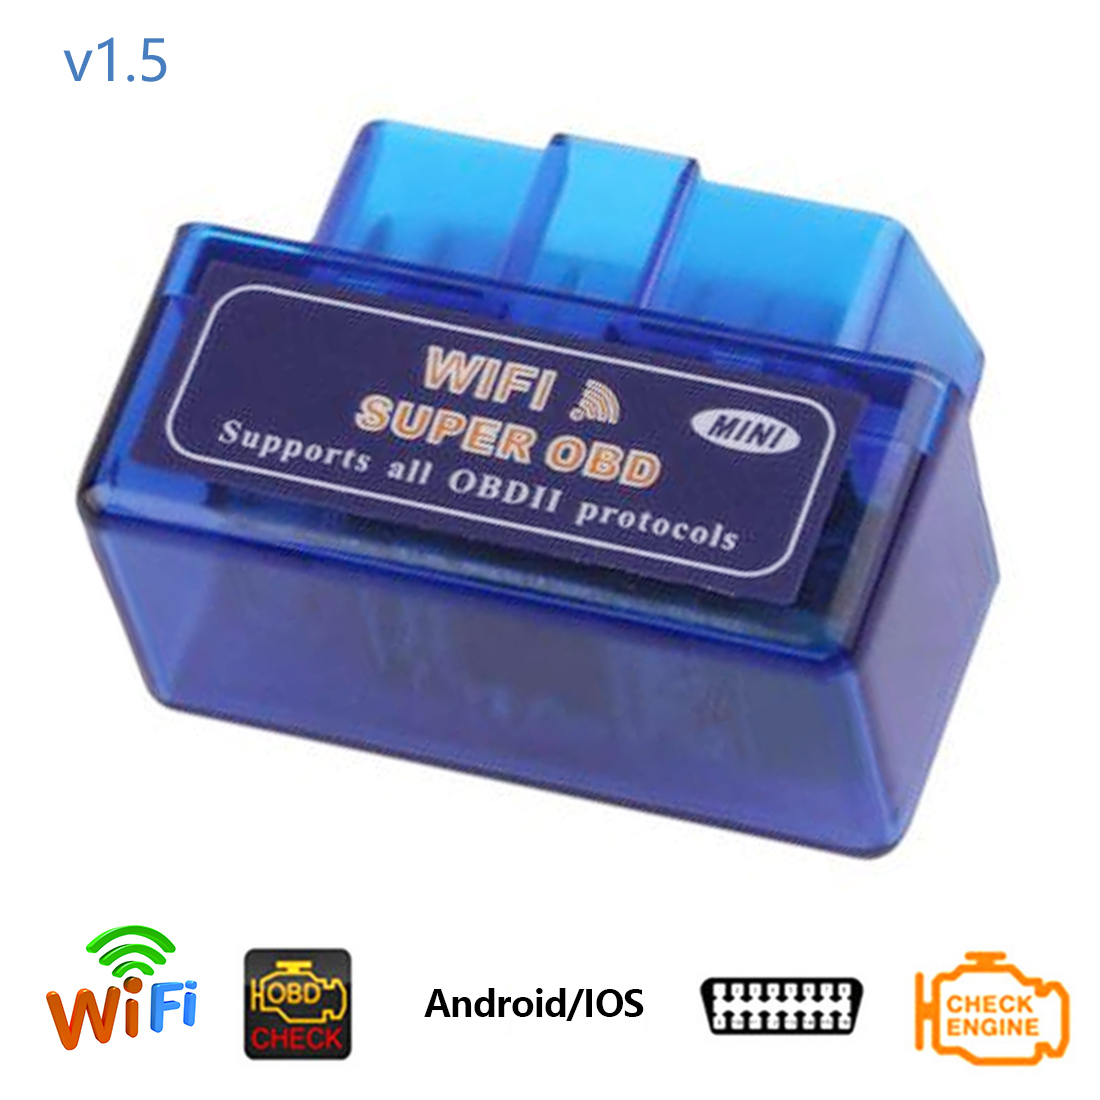 Dewtreetali ELM 327 OBD <font><b>2</b></font> Diagnostic Scanner Tool WiFi Version <font><b>1.5</b></font> Elm327 Wifi Mini OBDII Code Reader With Chip <font><b>PIC18F25K80</b></font> image